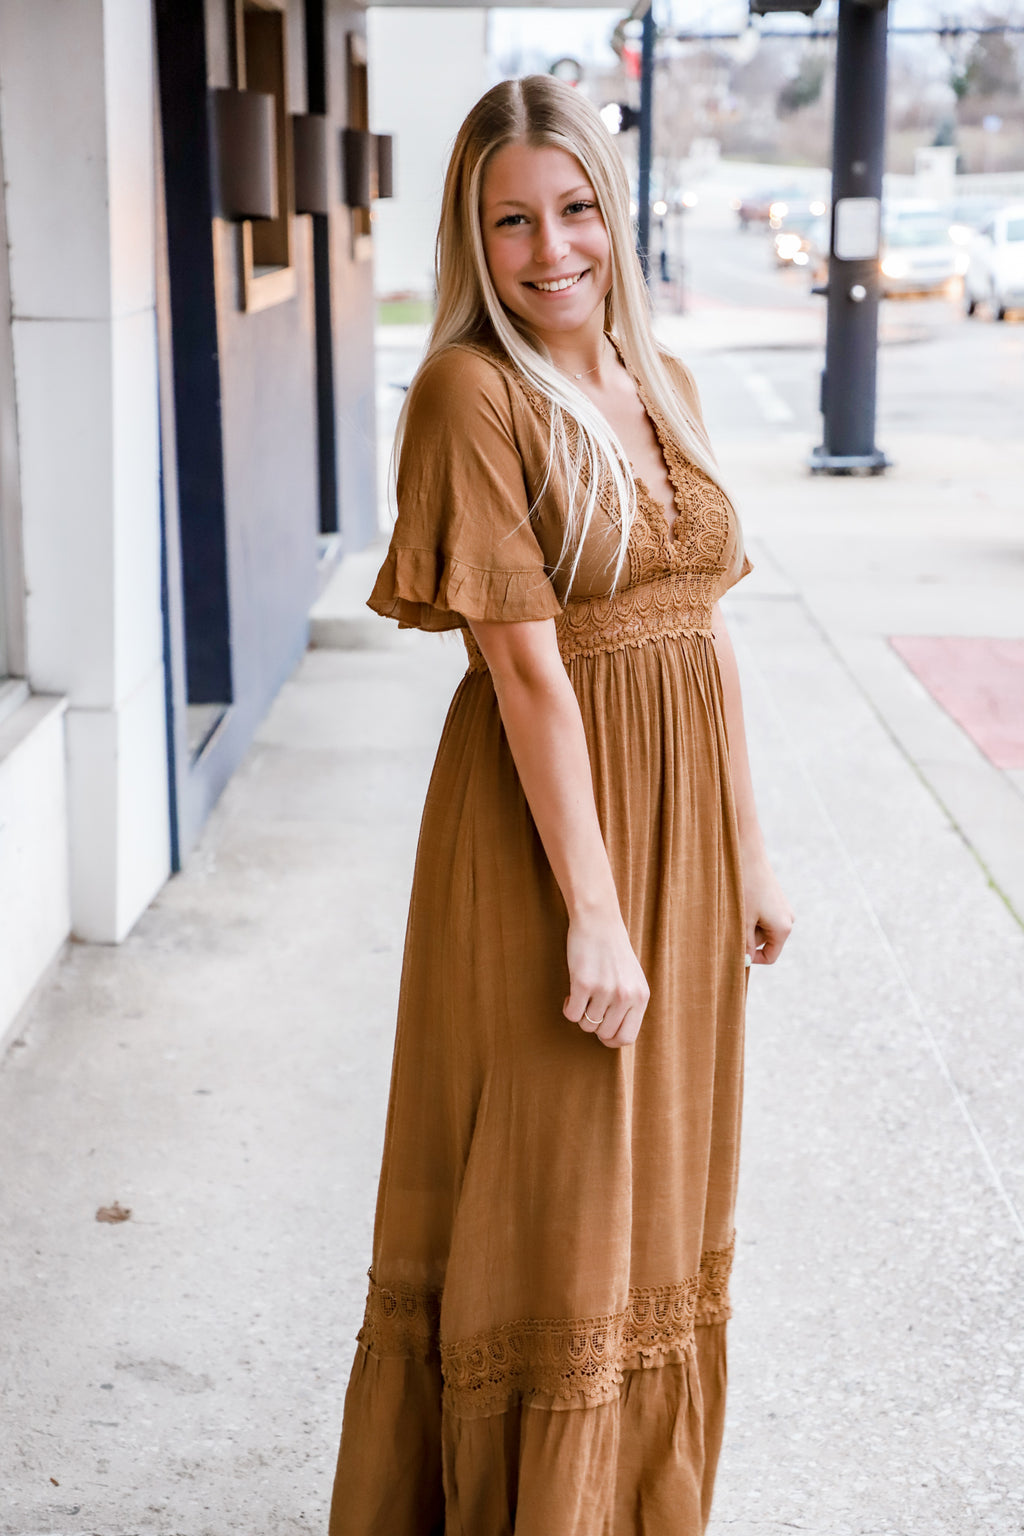 One Desire Caramel Crochet Maxi Dress